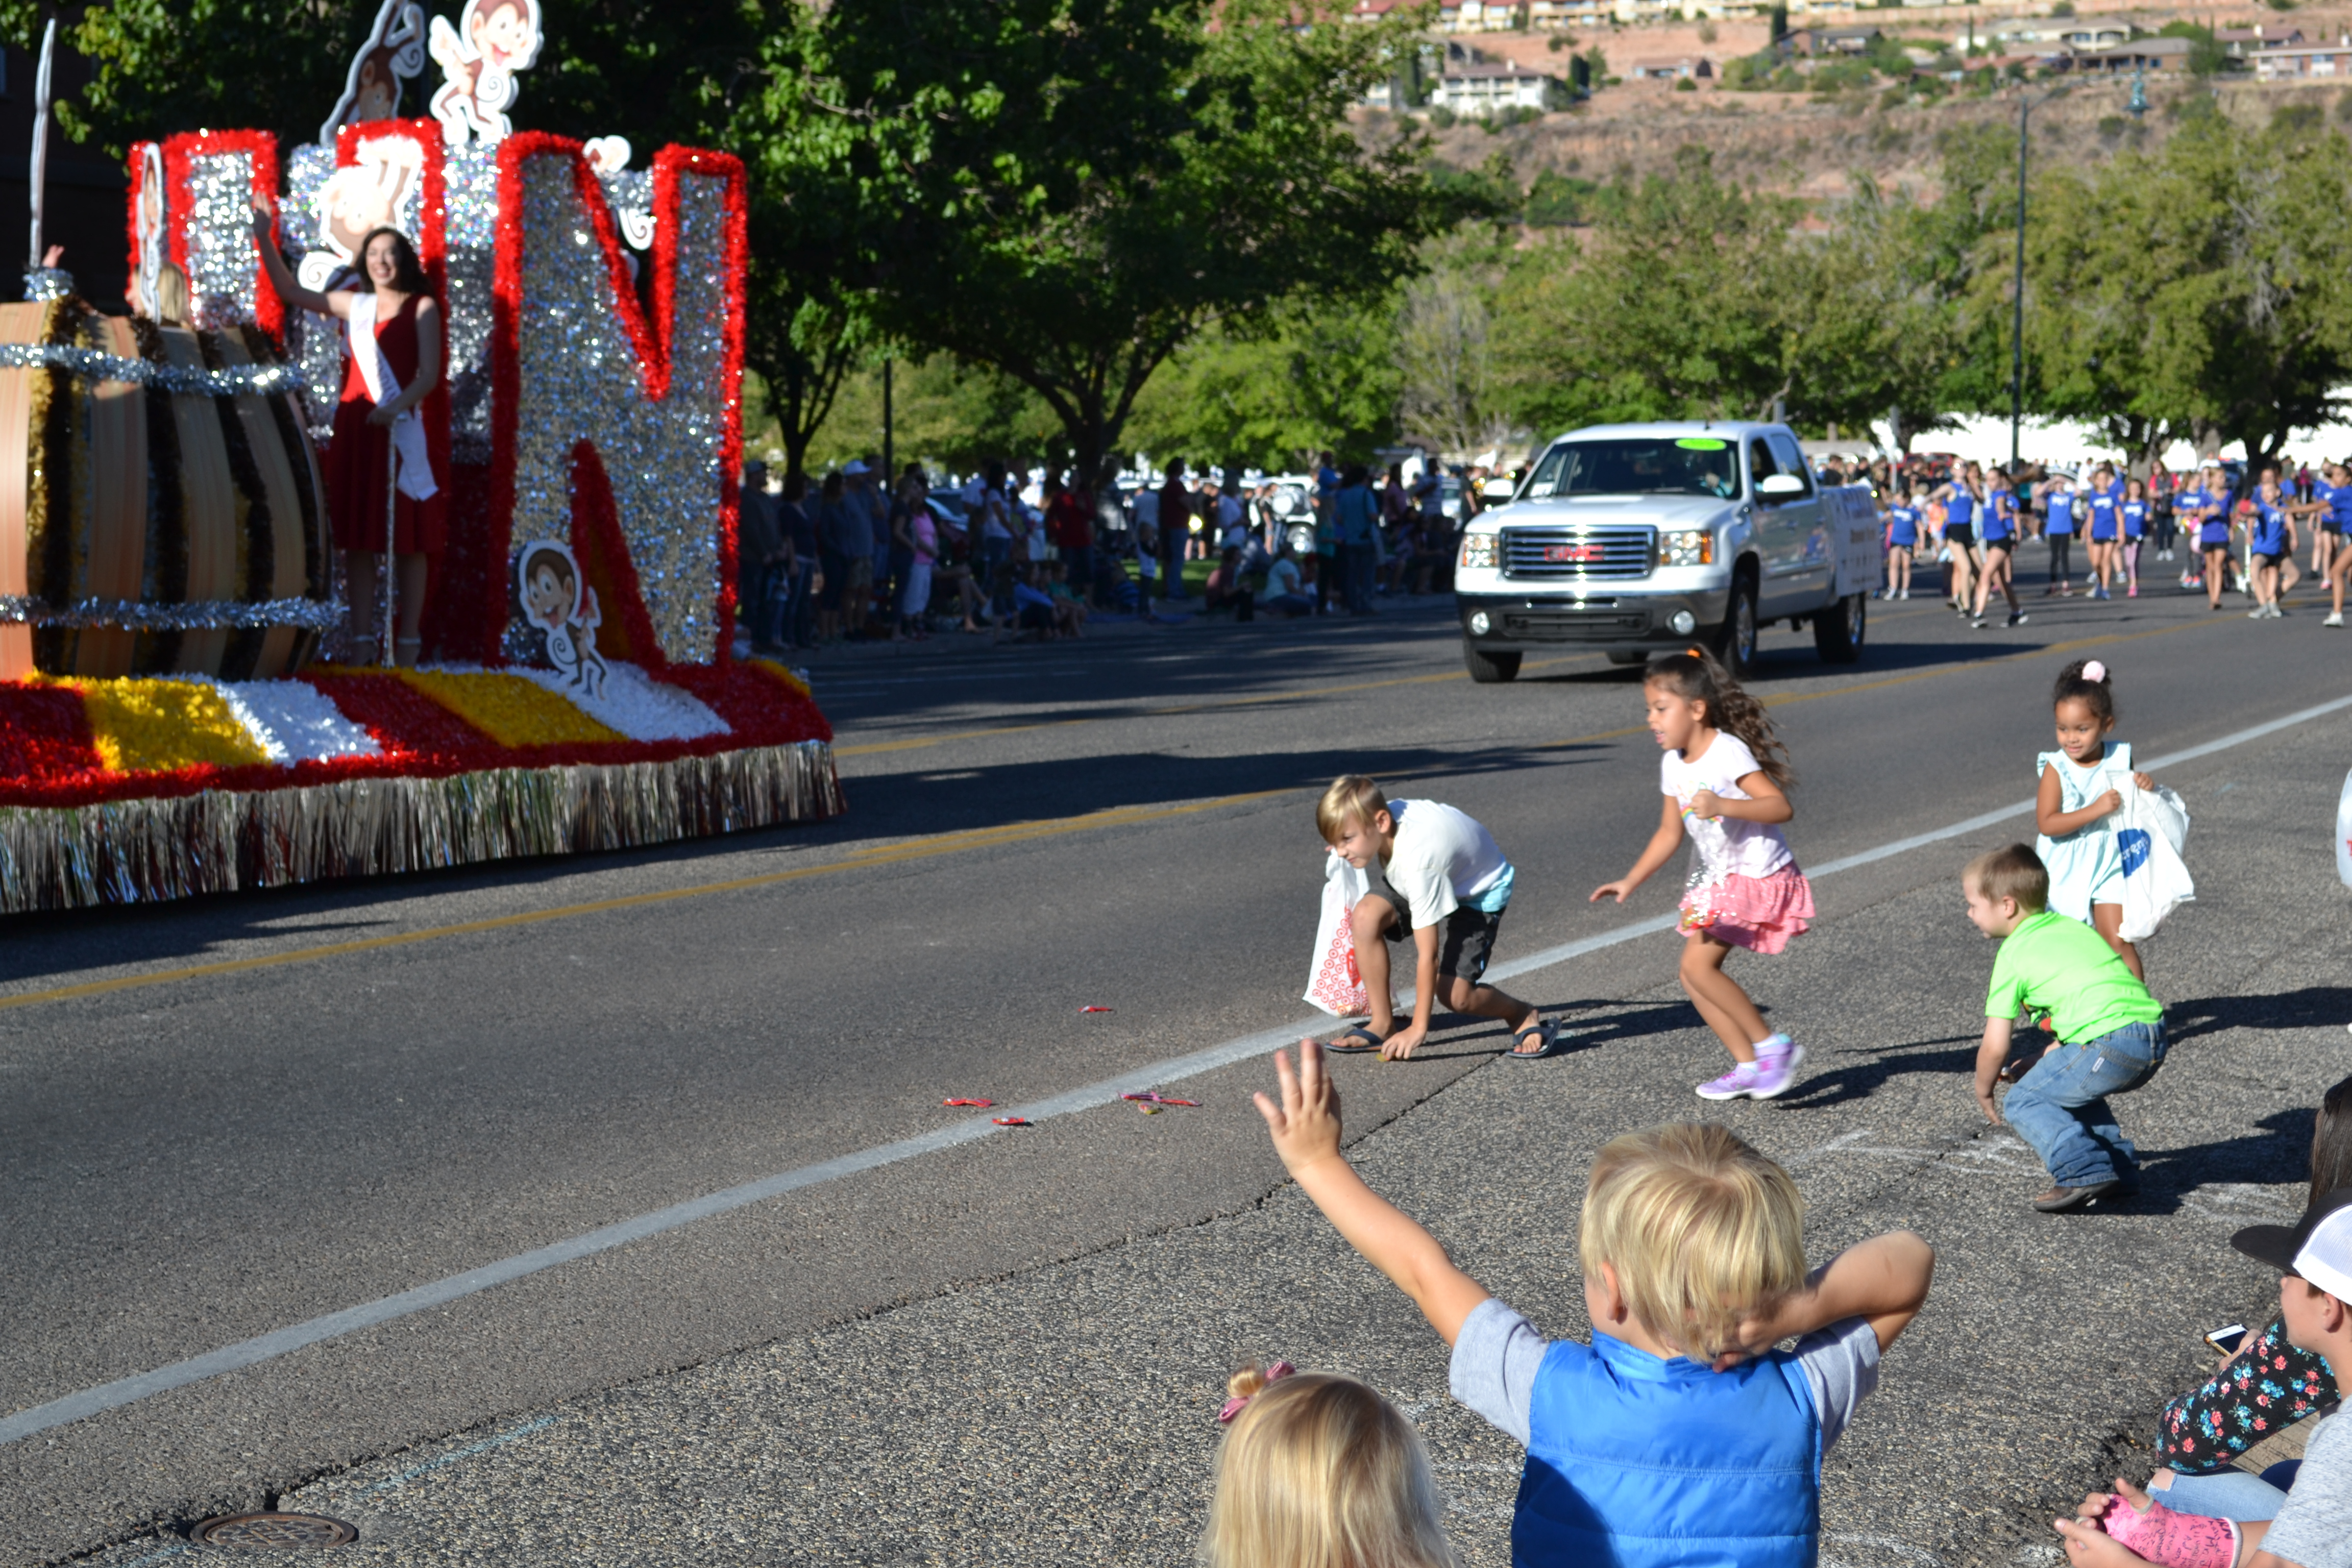 Kids run for candy thrown from a float at the Dixie Roundup Rodeo Parade, St. George, Utah, Sept. 17, 2016 | Photo by Joseph Witham, St. George News